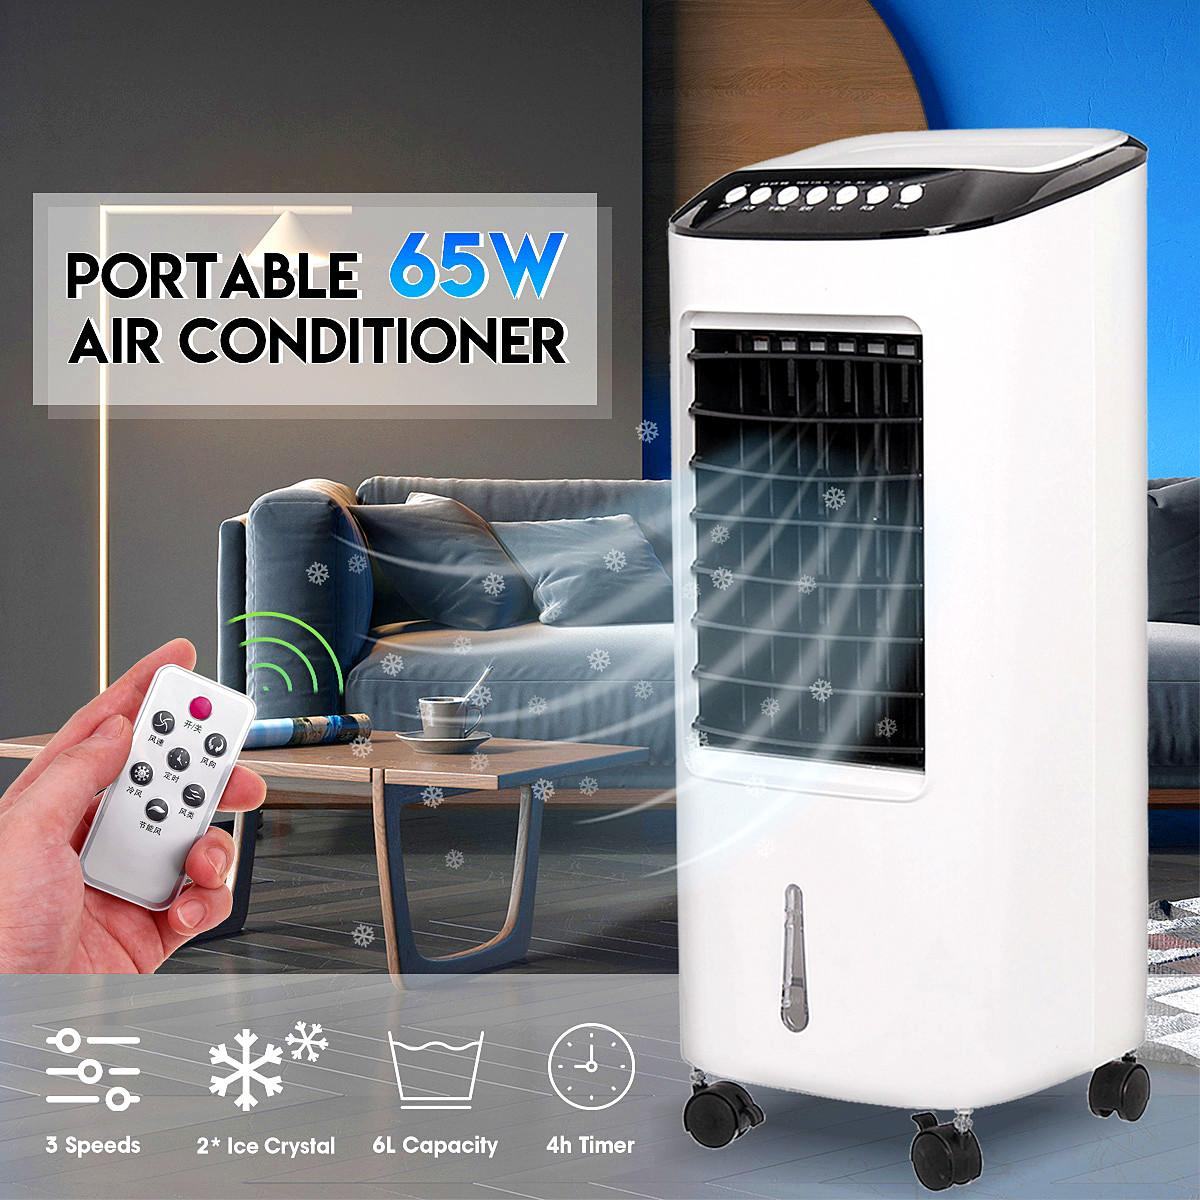 Home Mini Air Conditioner Portable Air Conditioner Conditioning Cooling Fan Humidifier Remote Control Timer Energy Saving Cooler